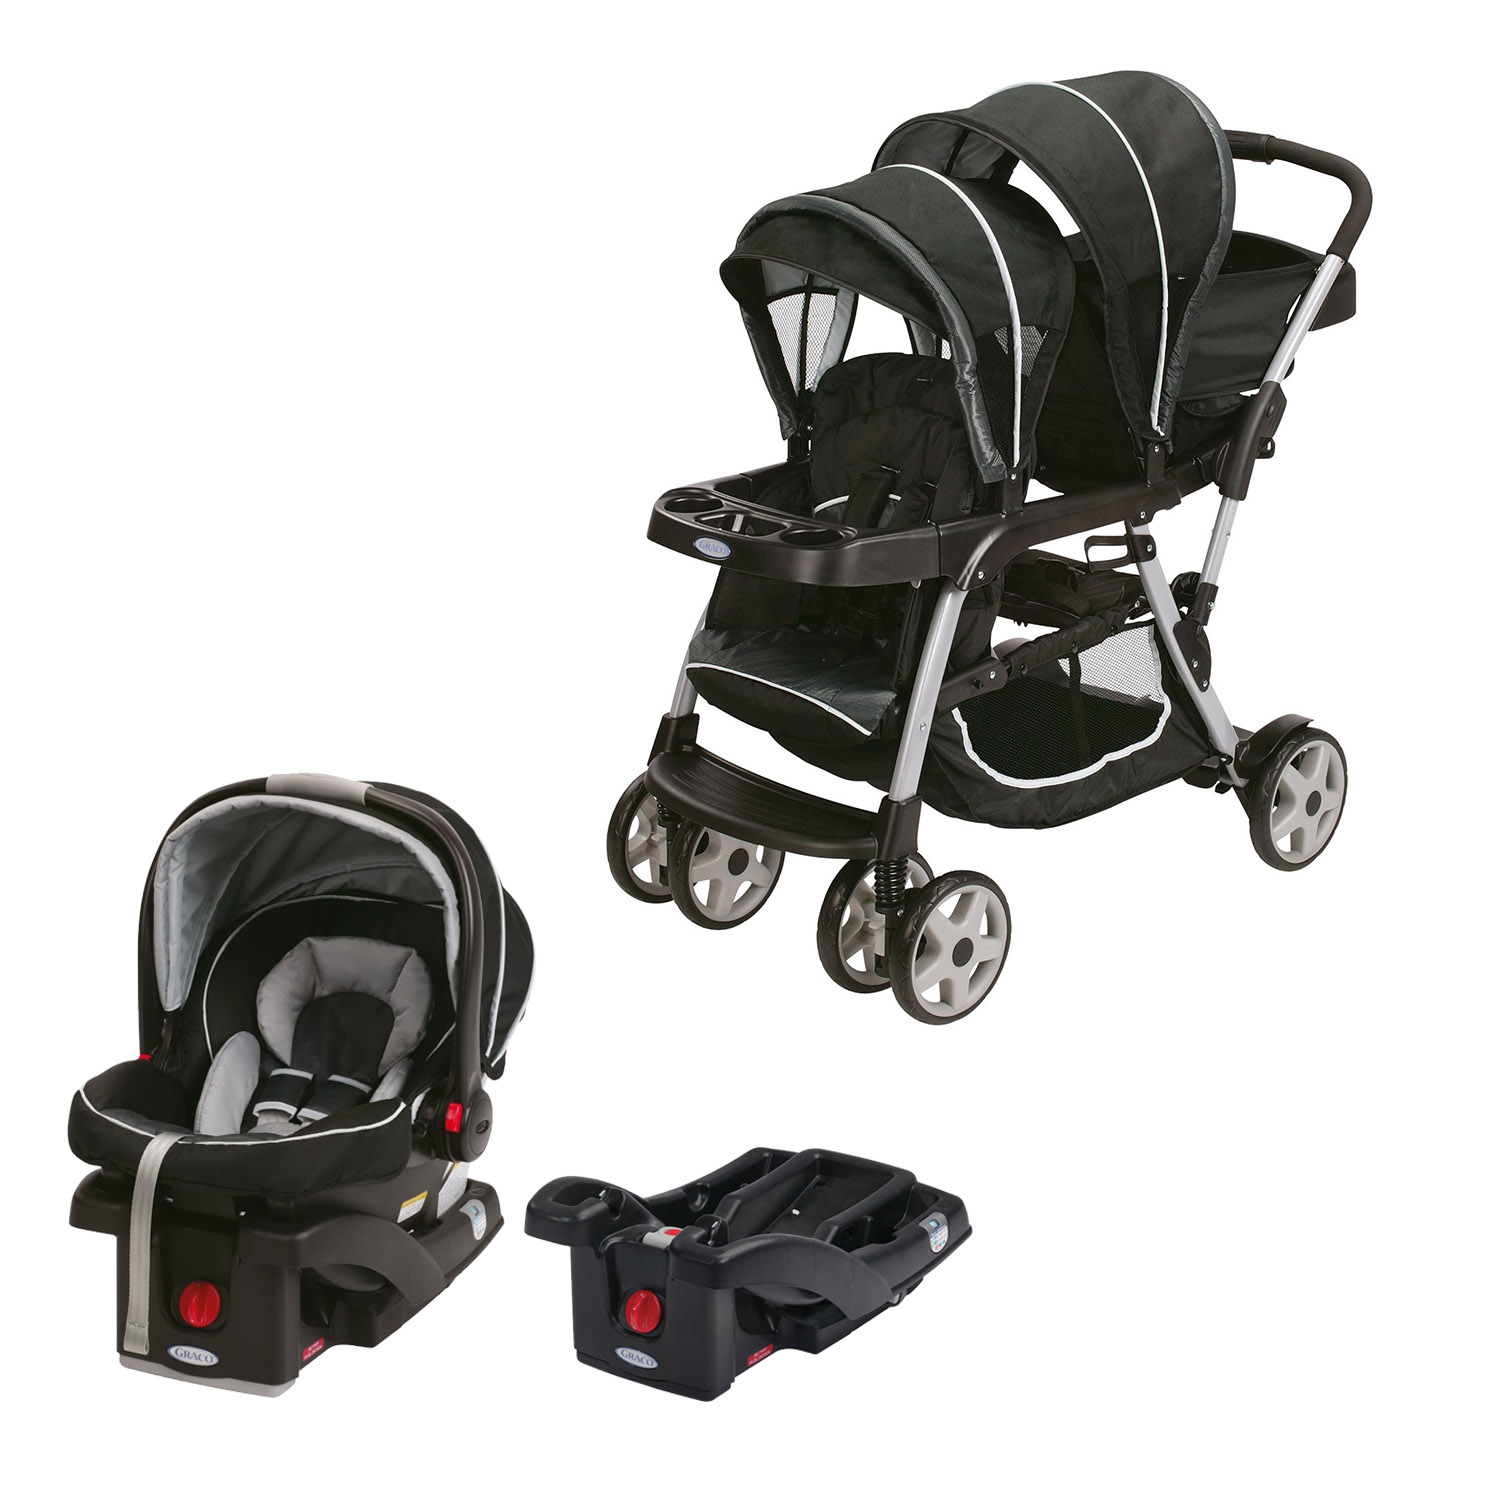 graco double baby stroller snugride car seat car seat base travel system ebay